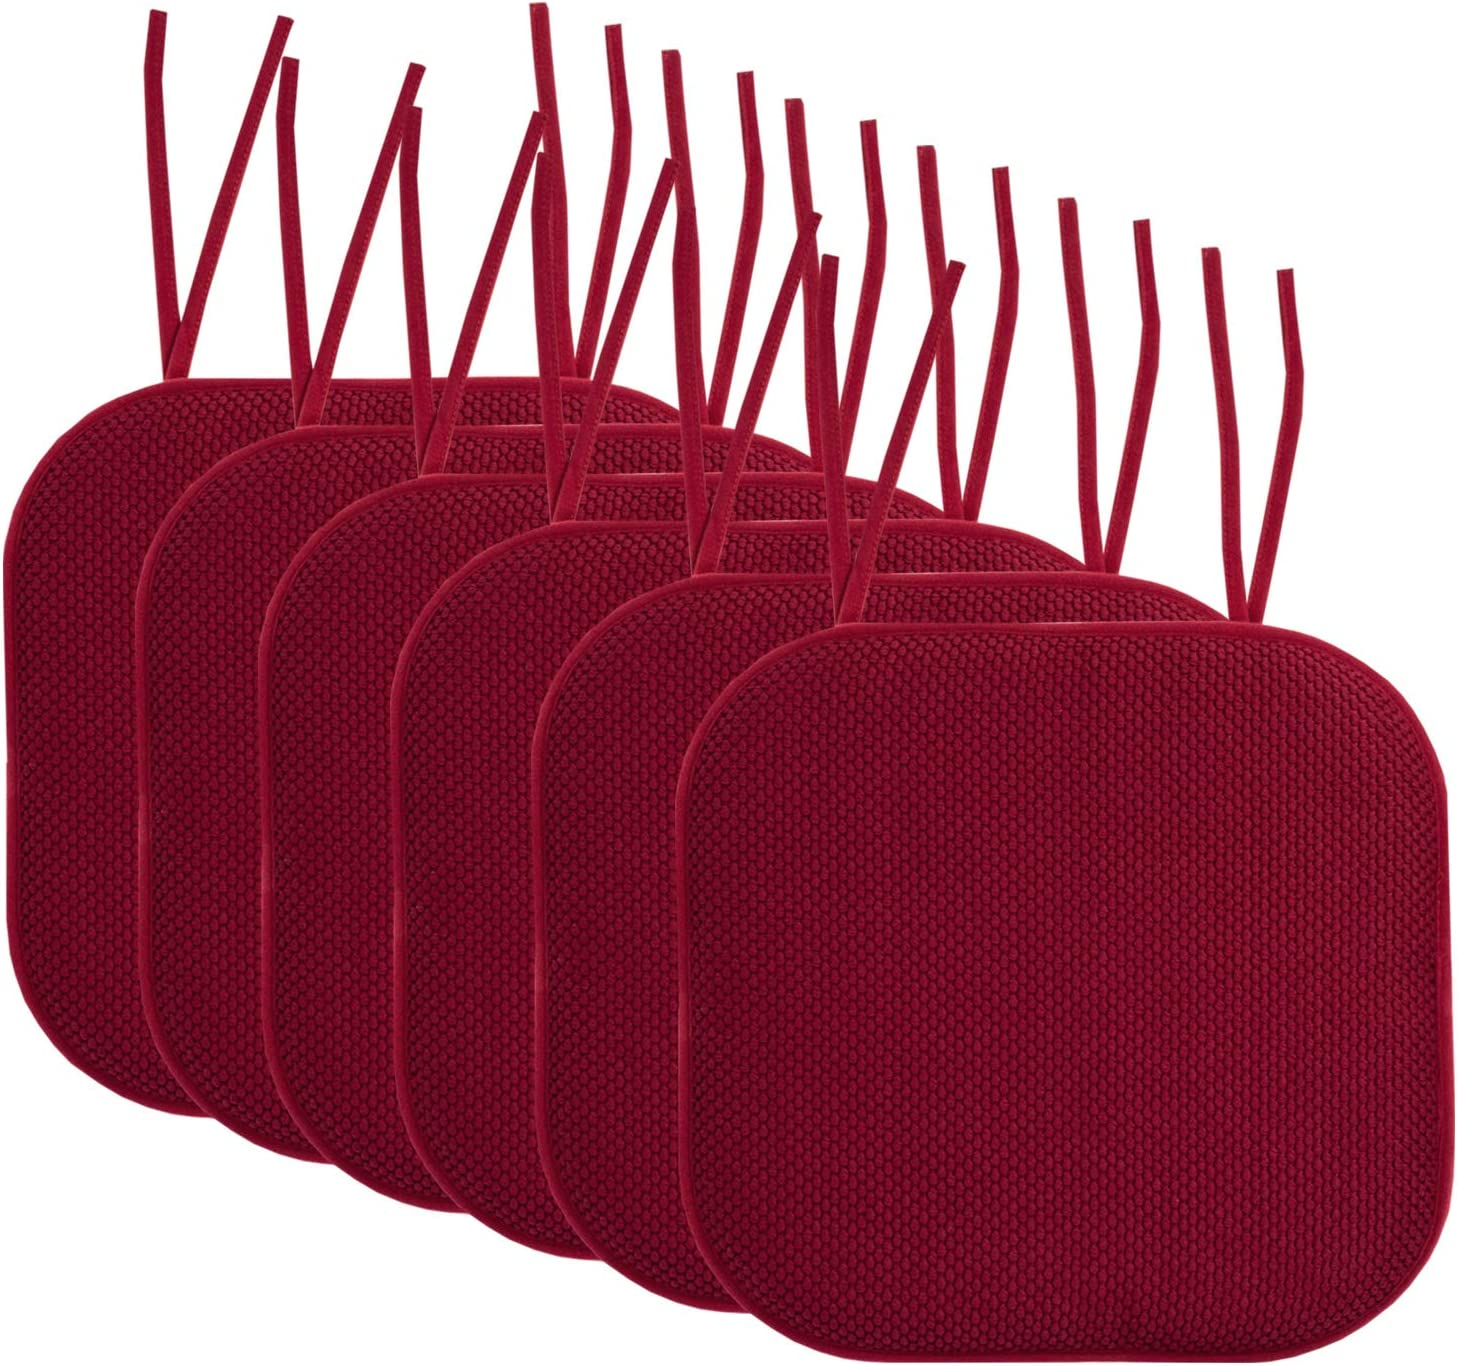 "Sweet Home Collection Chair Cushion Memory Foam Pads with Ties Honeycomb Pattern Slip Non Skid Rubber Back Rounded Square 16"" x 16"" Seat Cover, 6 Pack, Wine Burgundy"